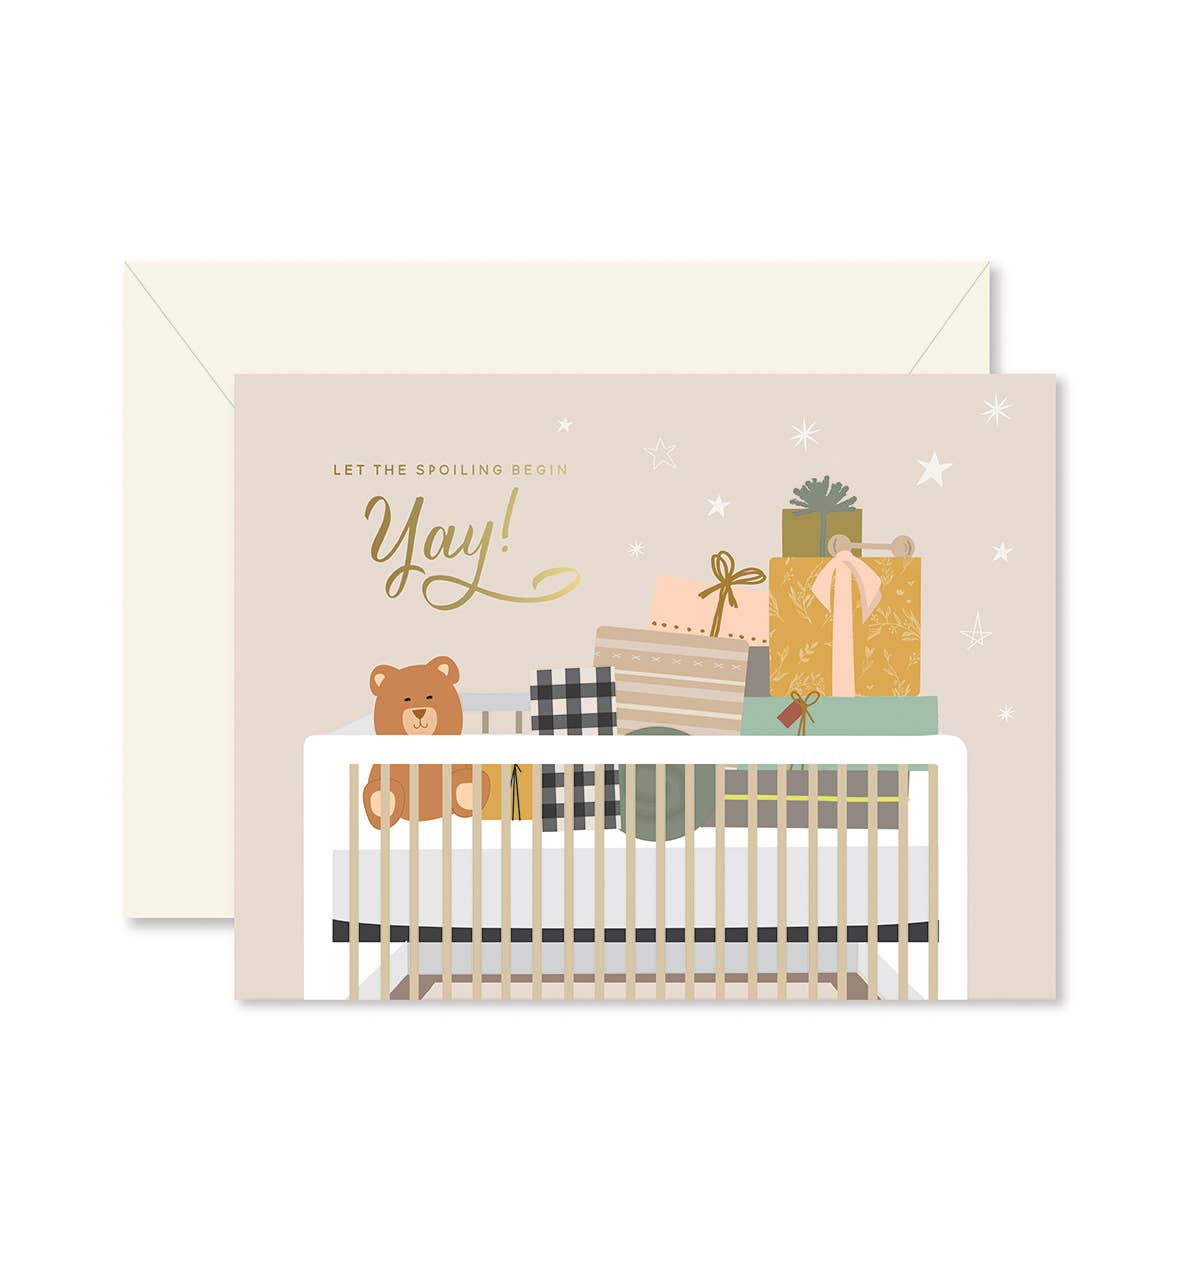 Spoiling Baby Greeting Card   Trada Marketplace